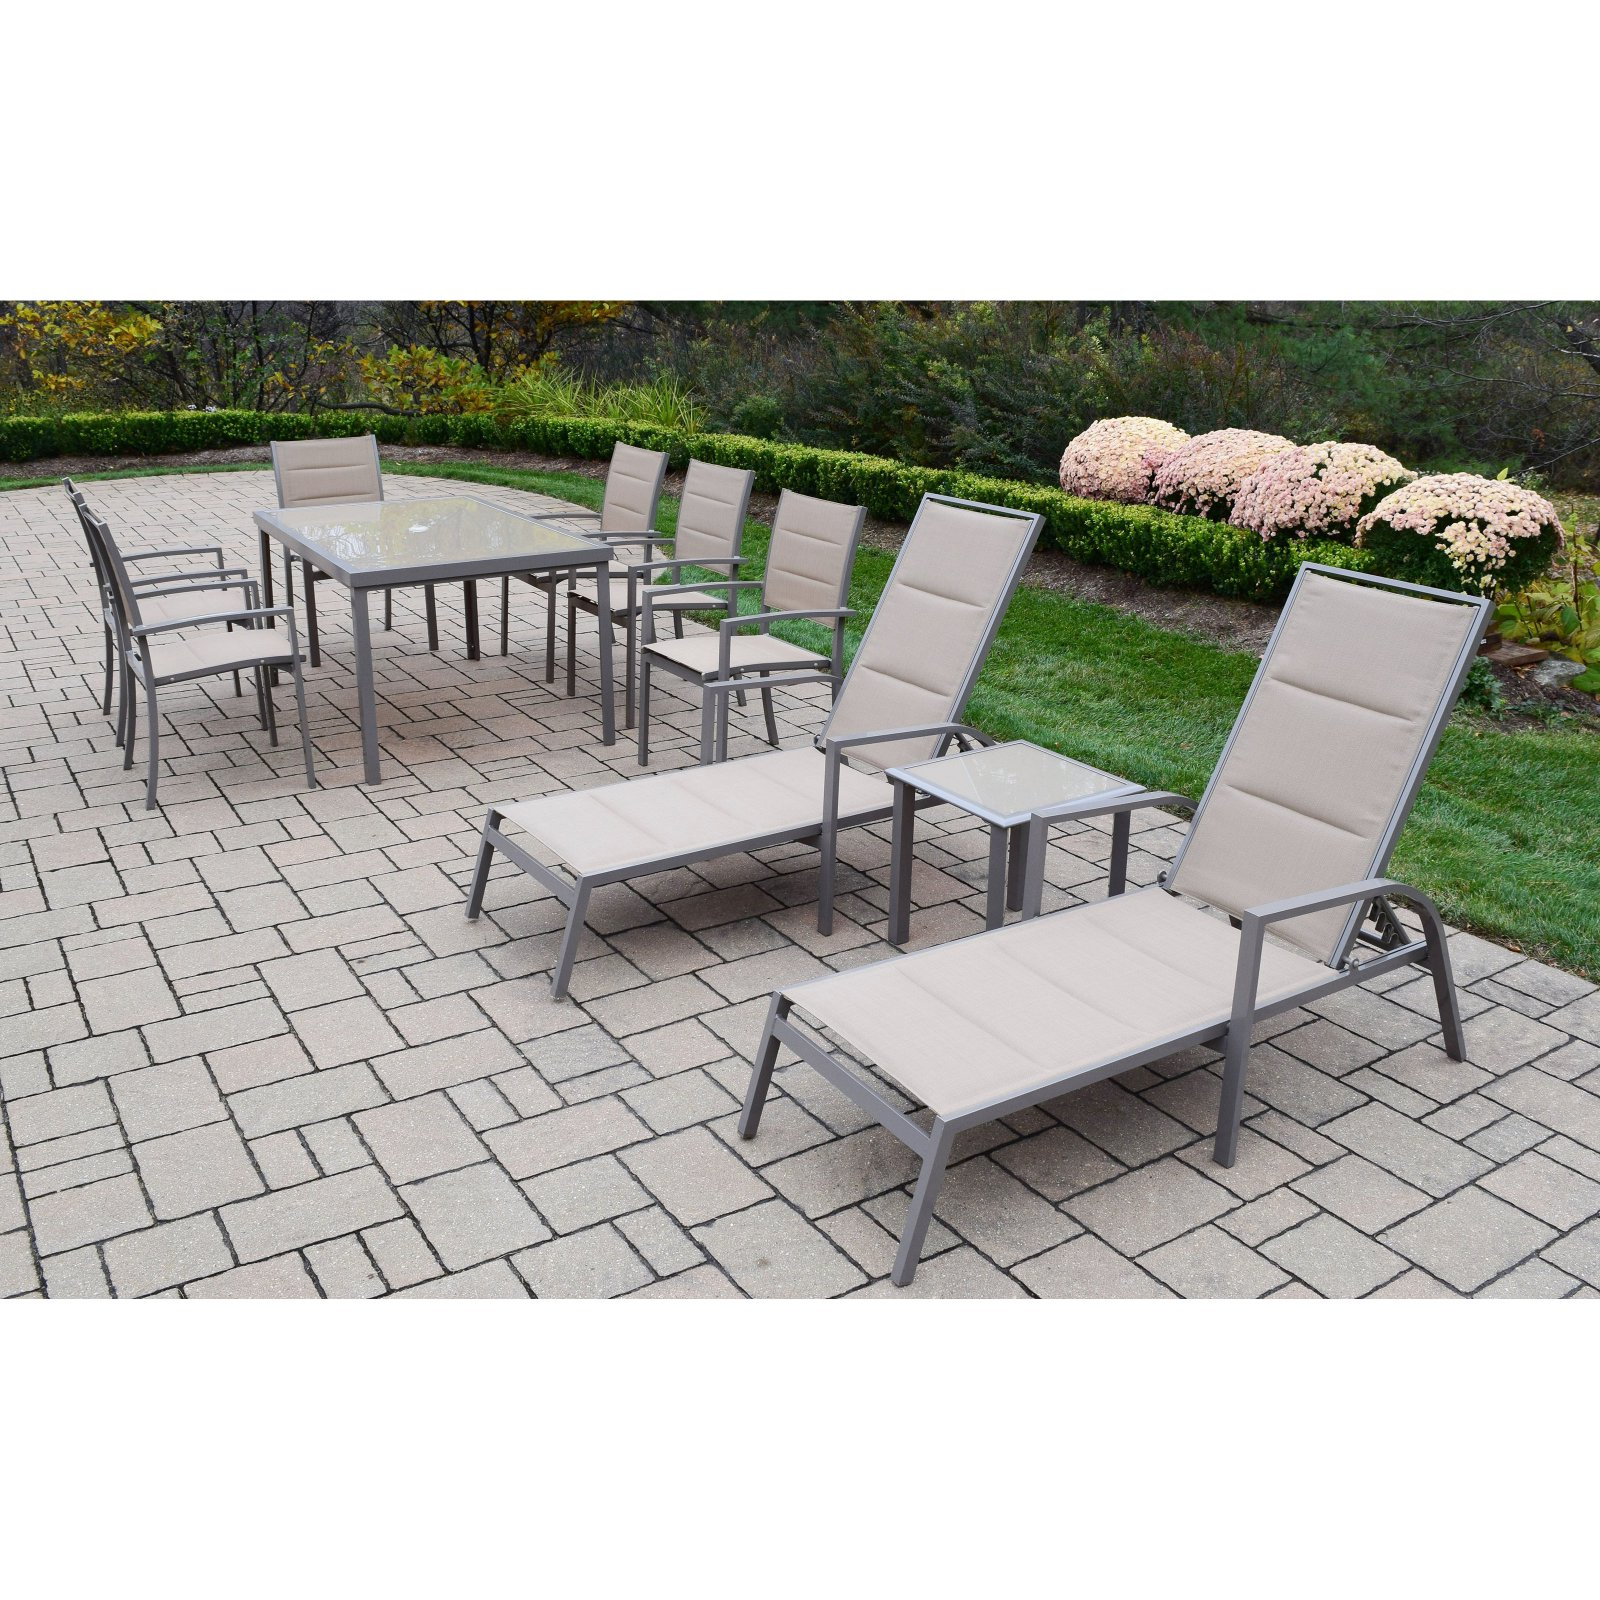 Oakland Living Padded Sling Aluminum Patio Dining and Chaise Lounge Set with Optional Umbrella